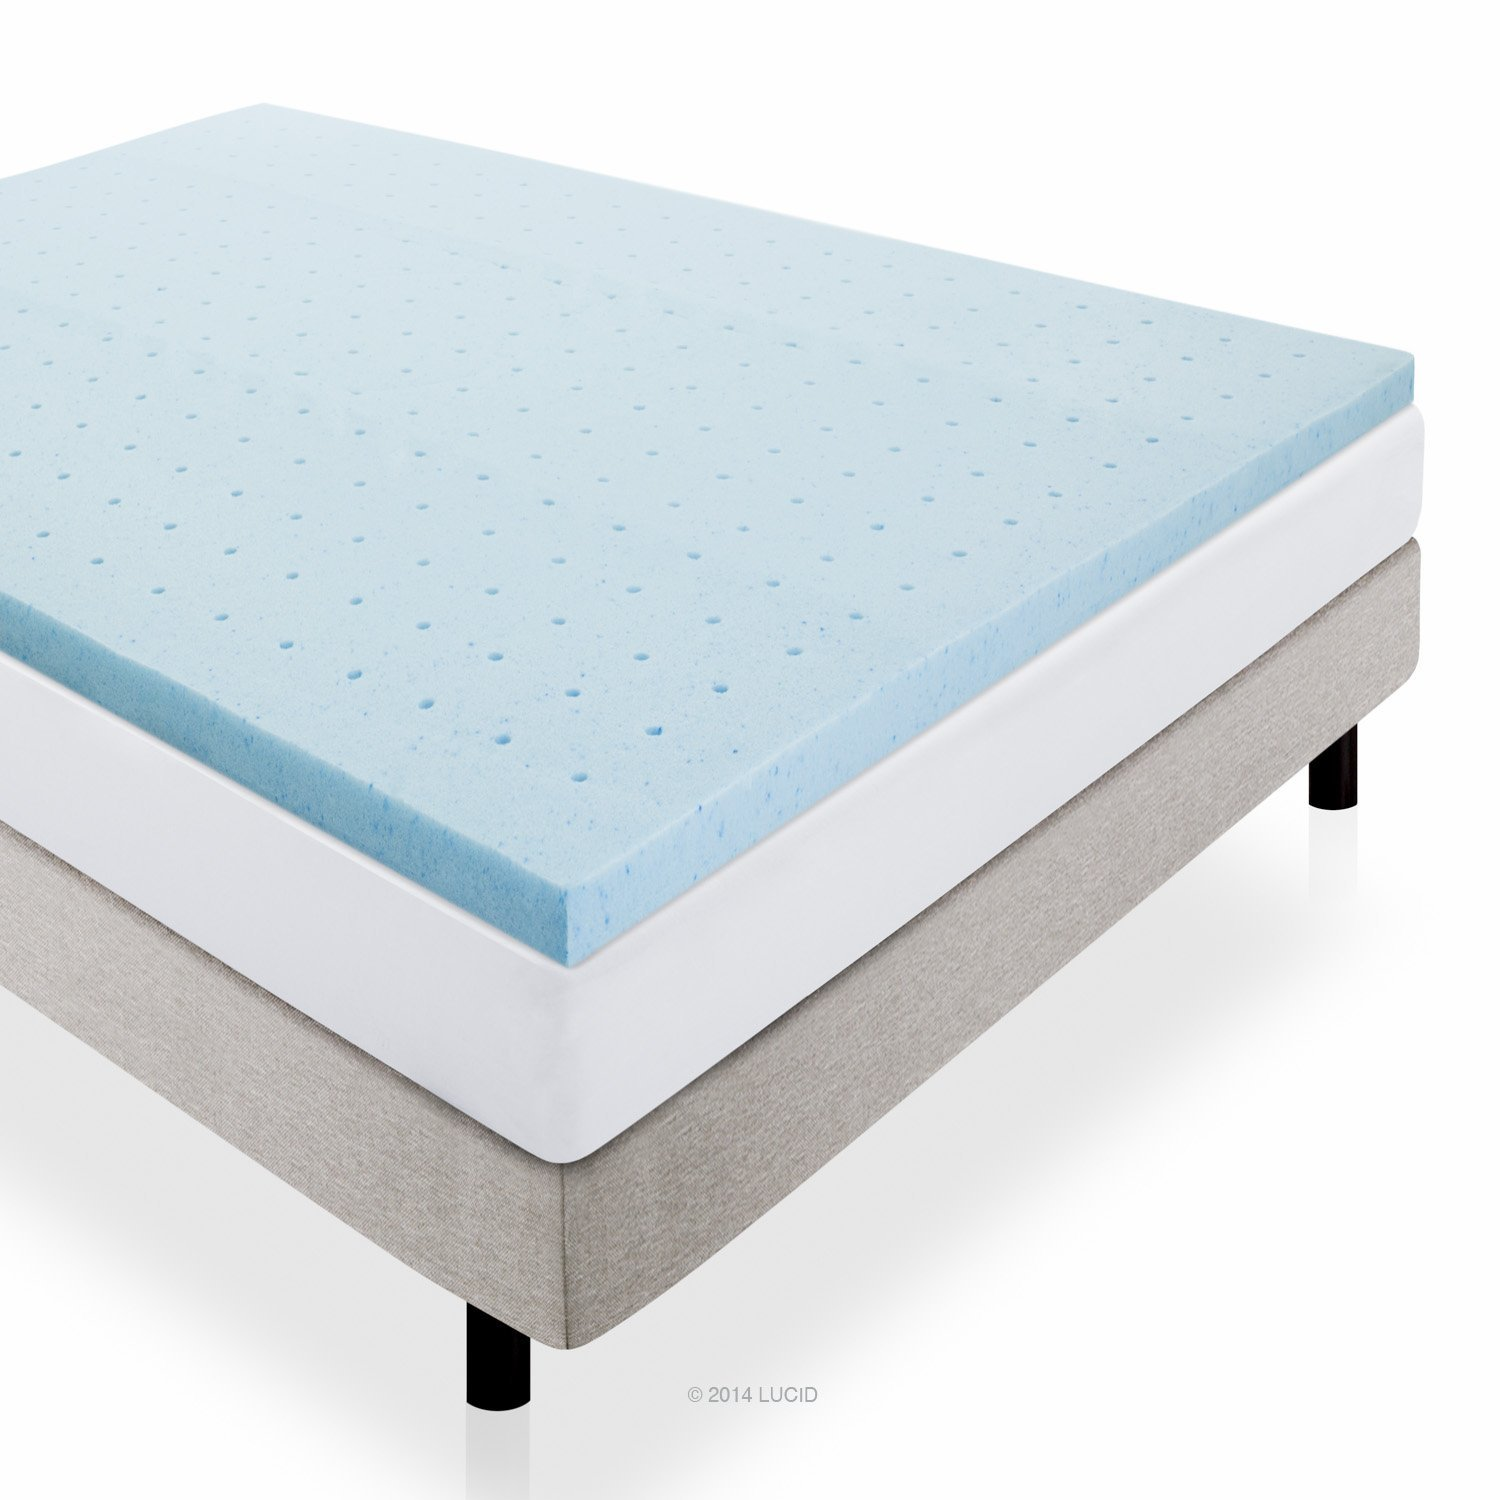 Lucid 2 Inch Gel Infused Ventilated Memory Foam Mattress Topper Review